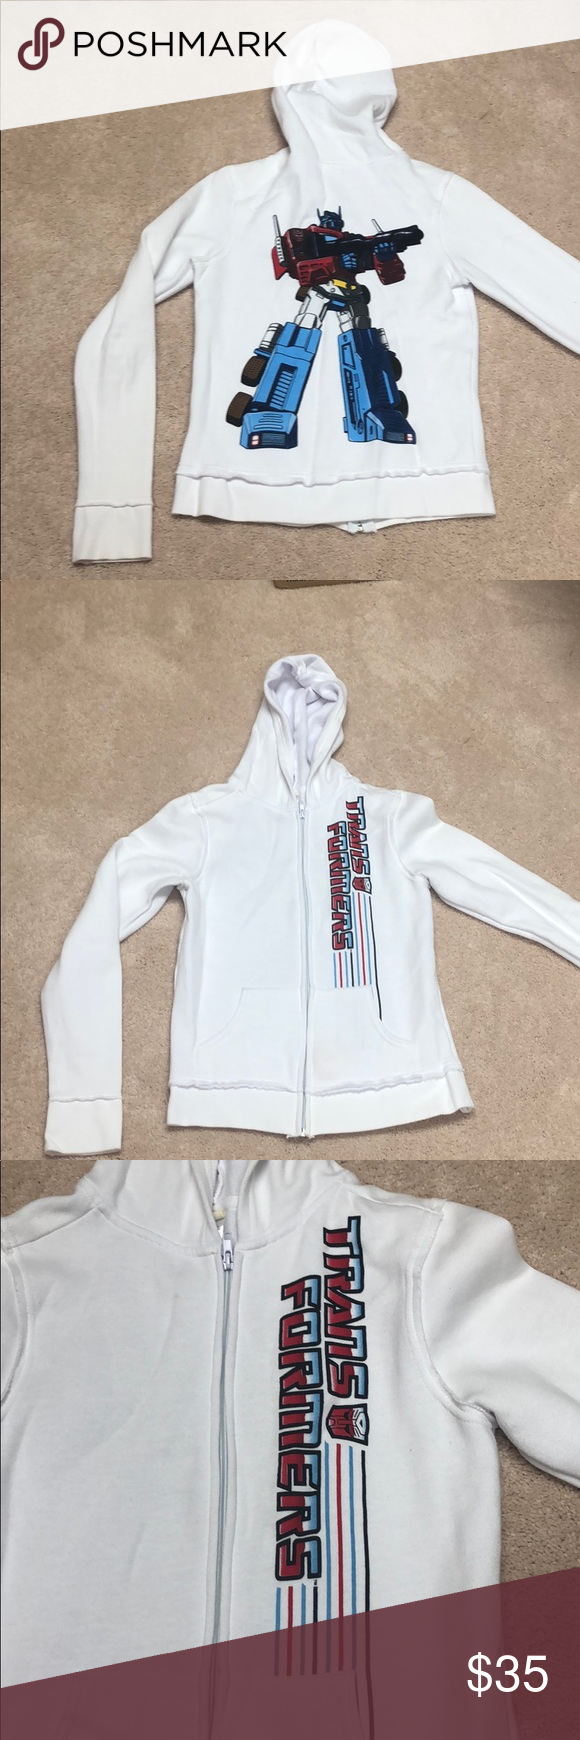 Transformers zip up hoodie